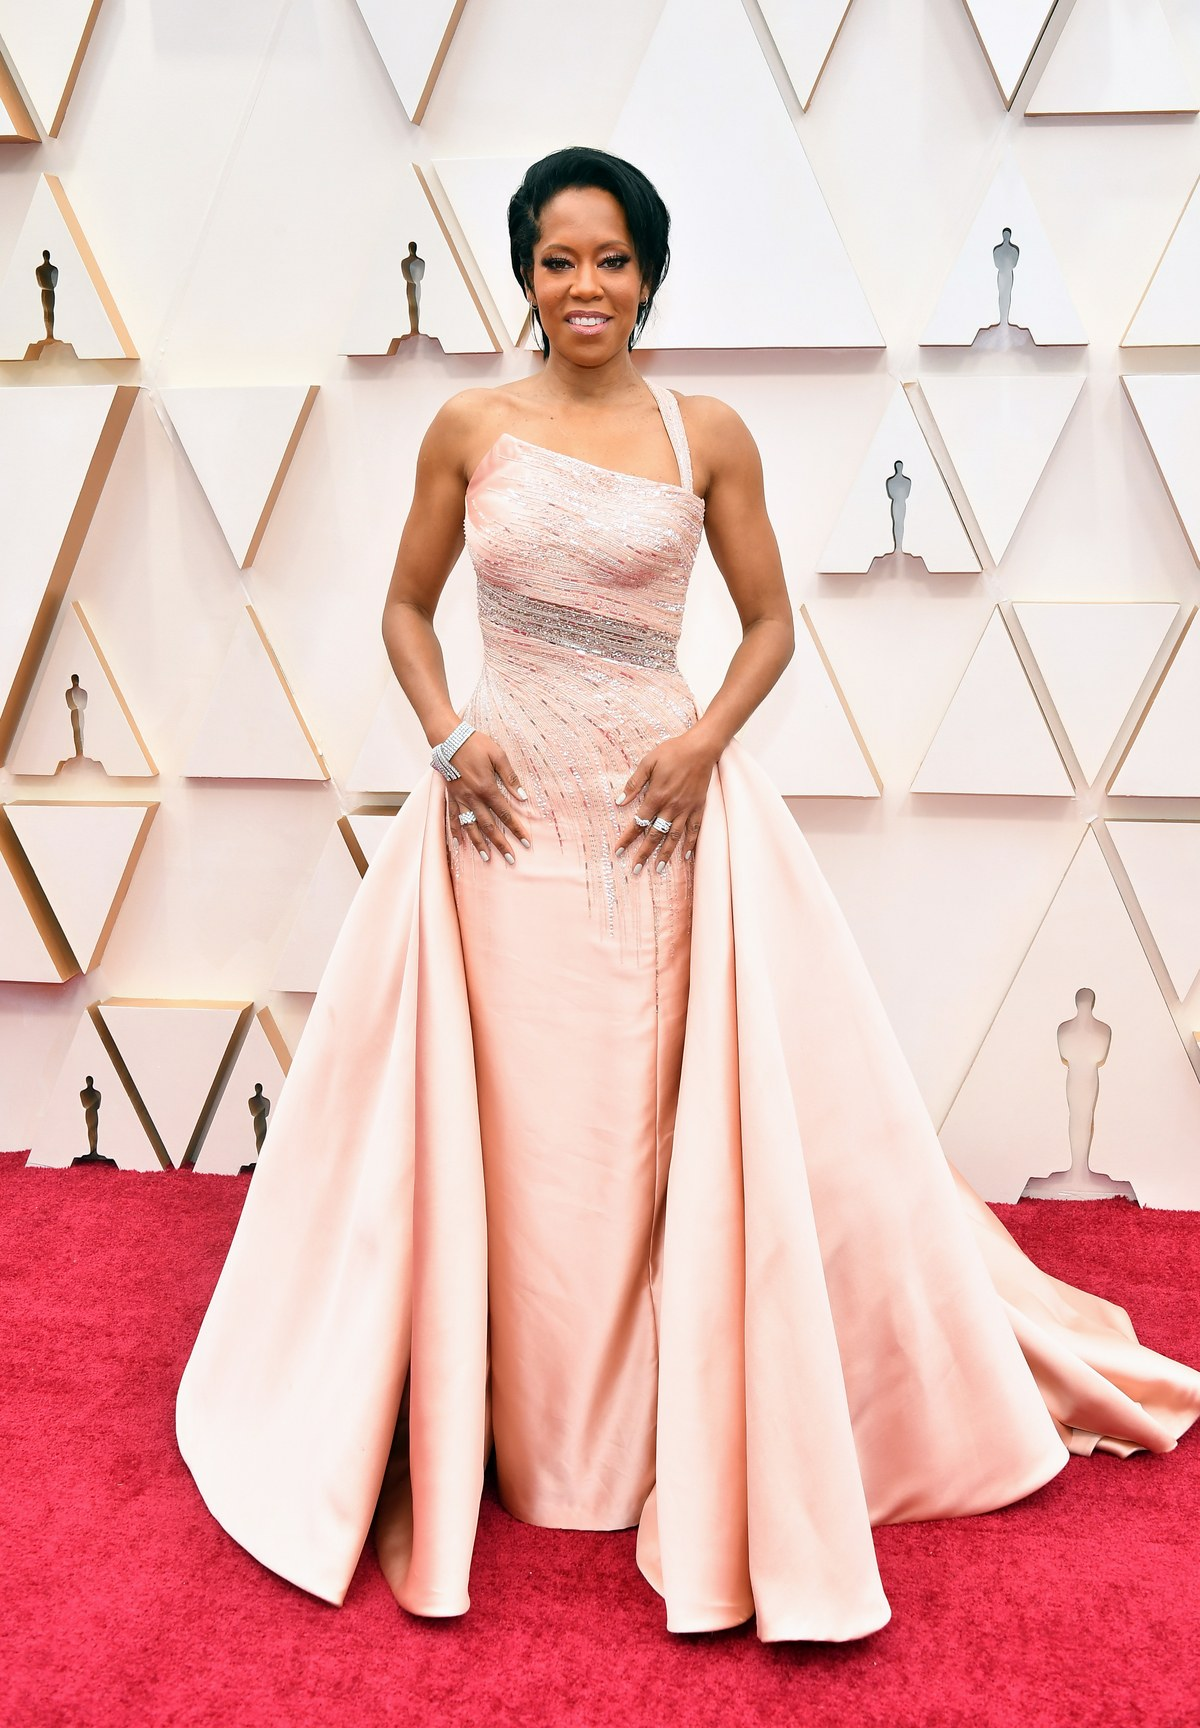 The-most-rave-worthy-looks-from-the-oscars-2020-red-carpet-theravelist